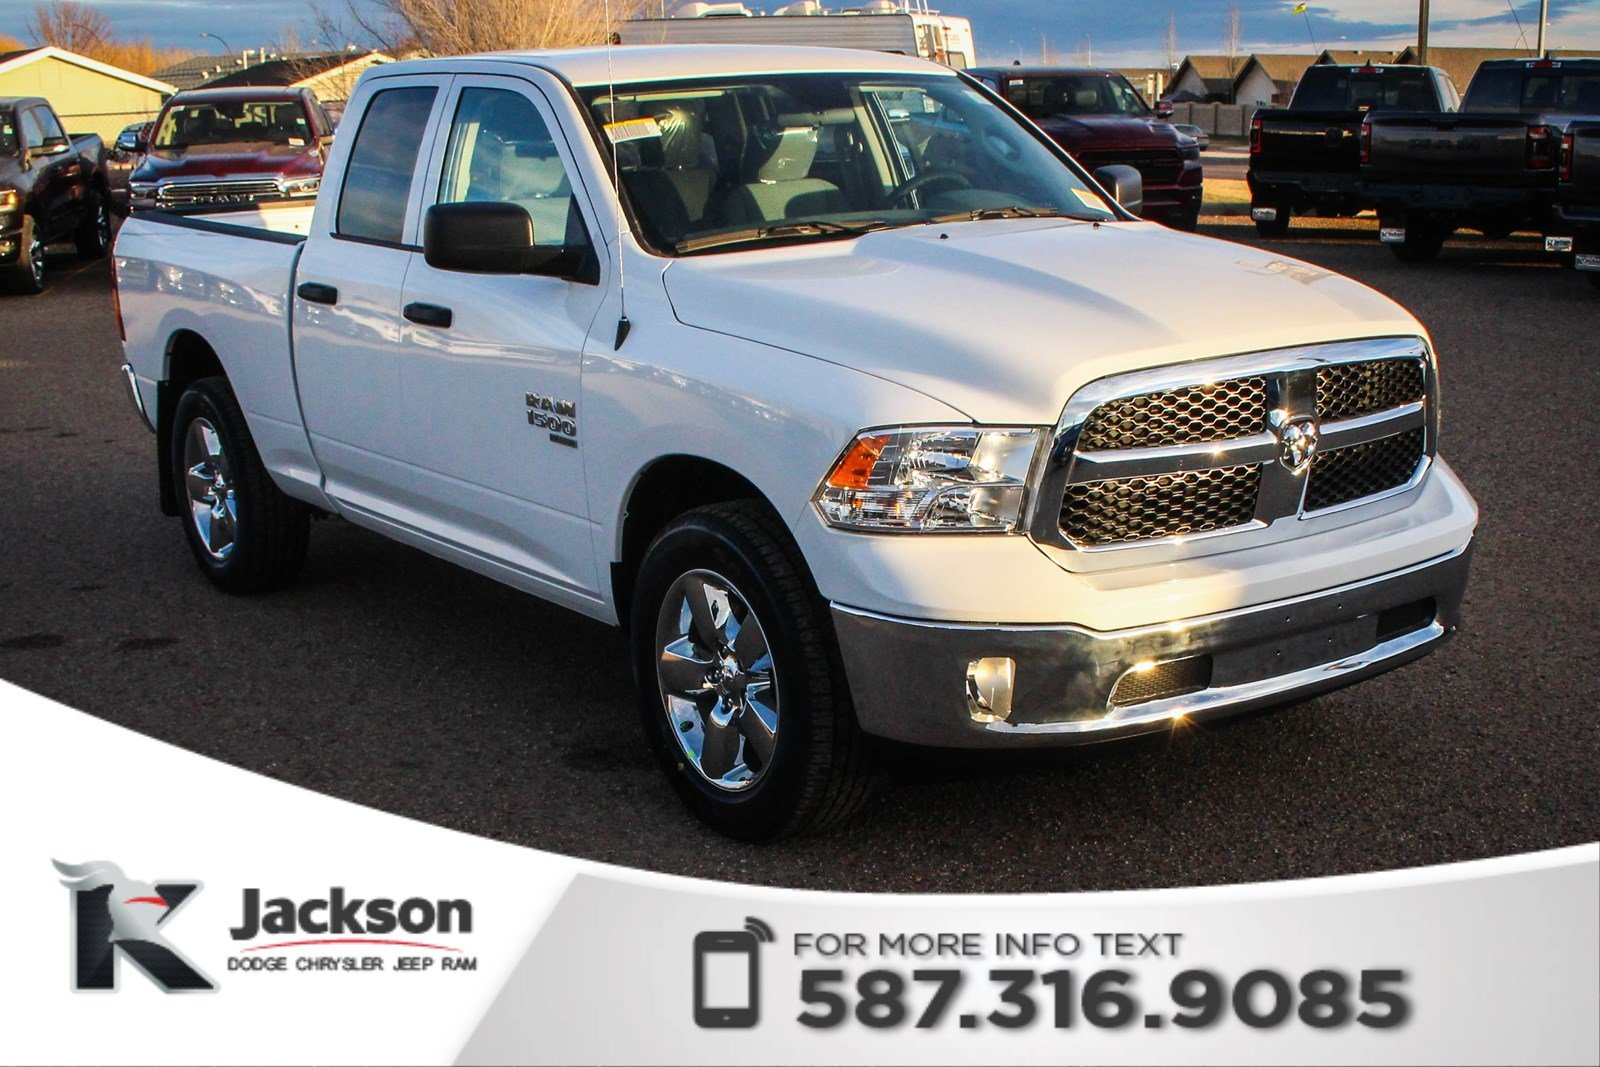 New 2019 Ram 1500 Classic Sxt Plus Quad Cab V6 Quad Cab In Medicine